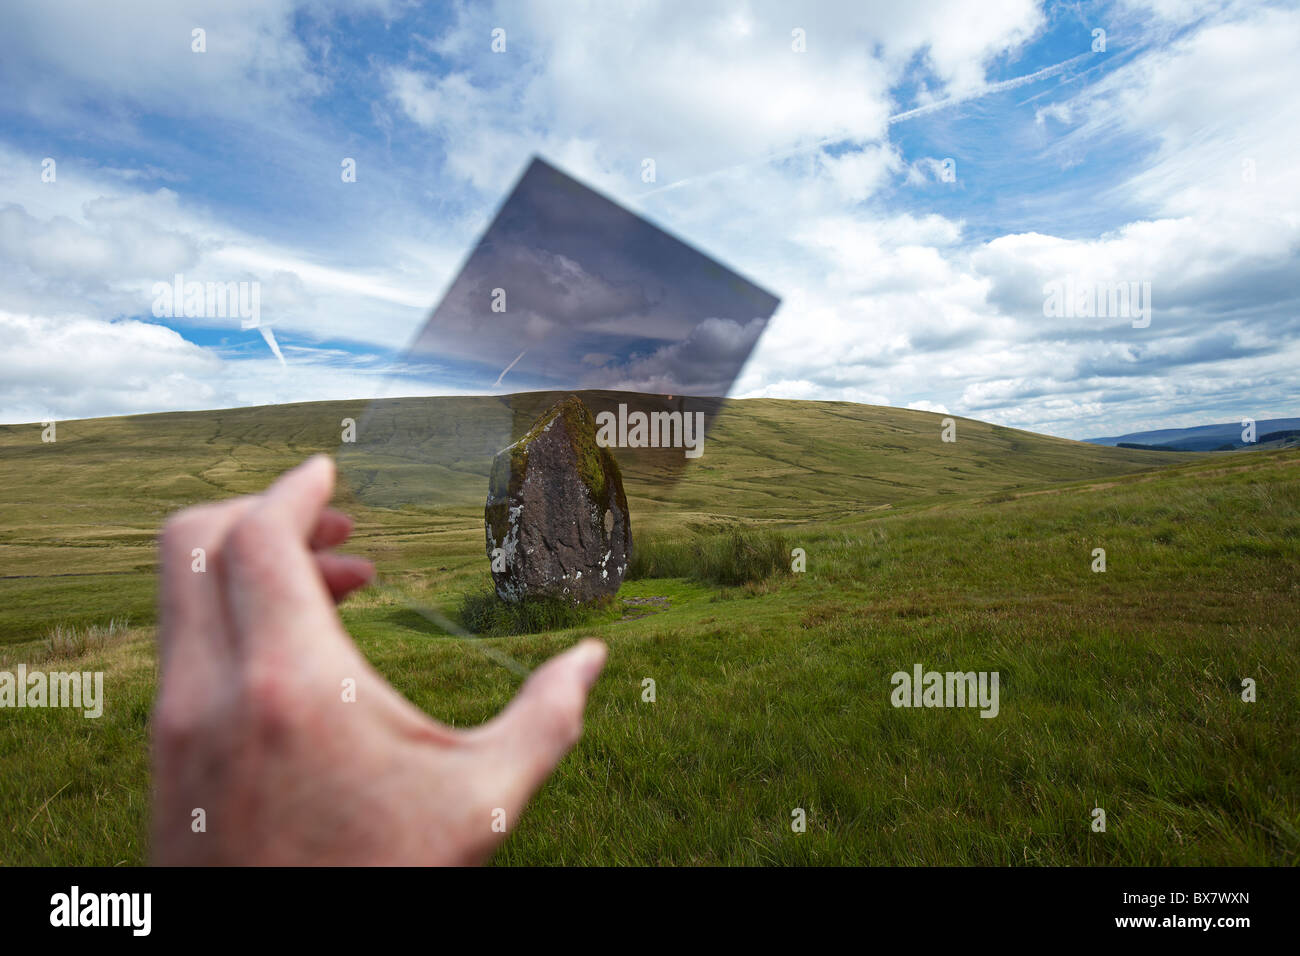 Photographer holding a graduated filter in front of the Neolithic Monument Maen Llia, Brecon Beacons, Wales, UK - Stock Image